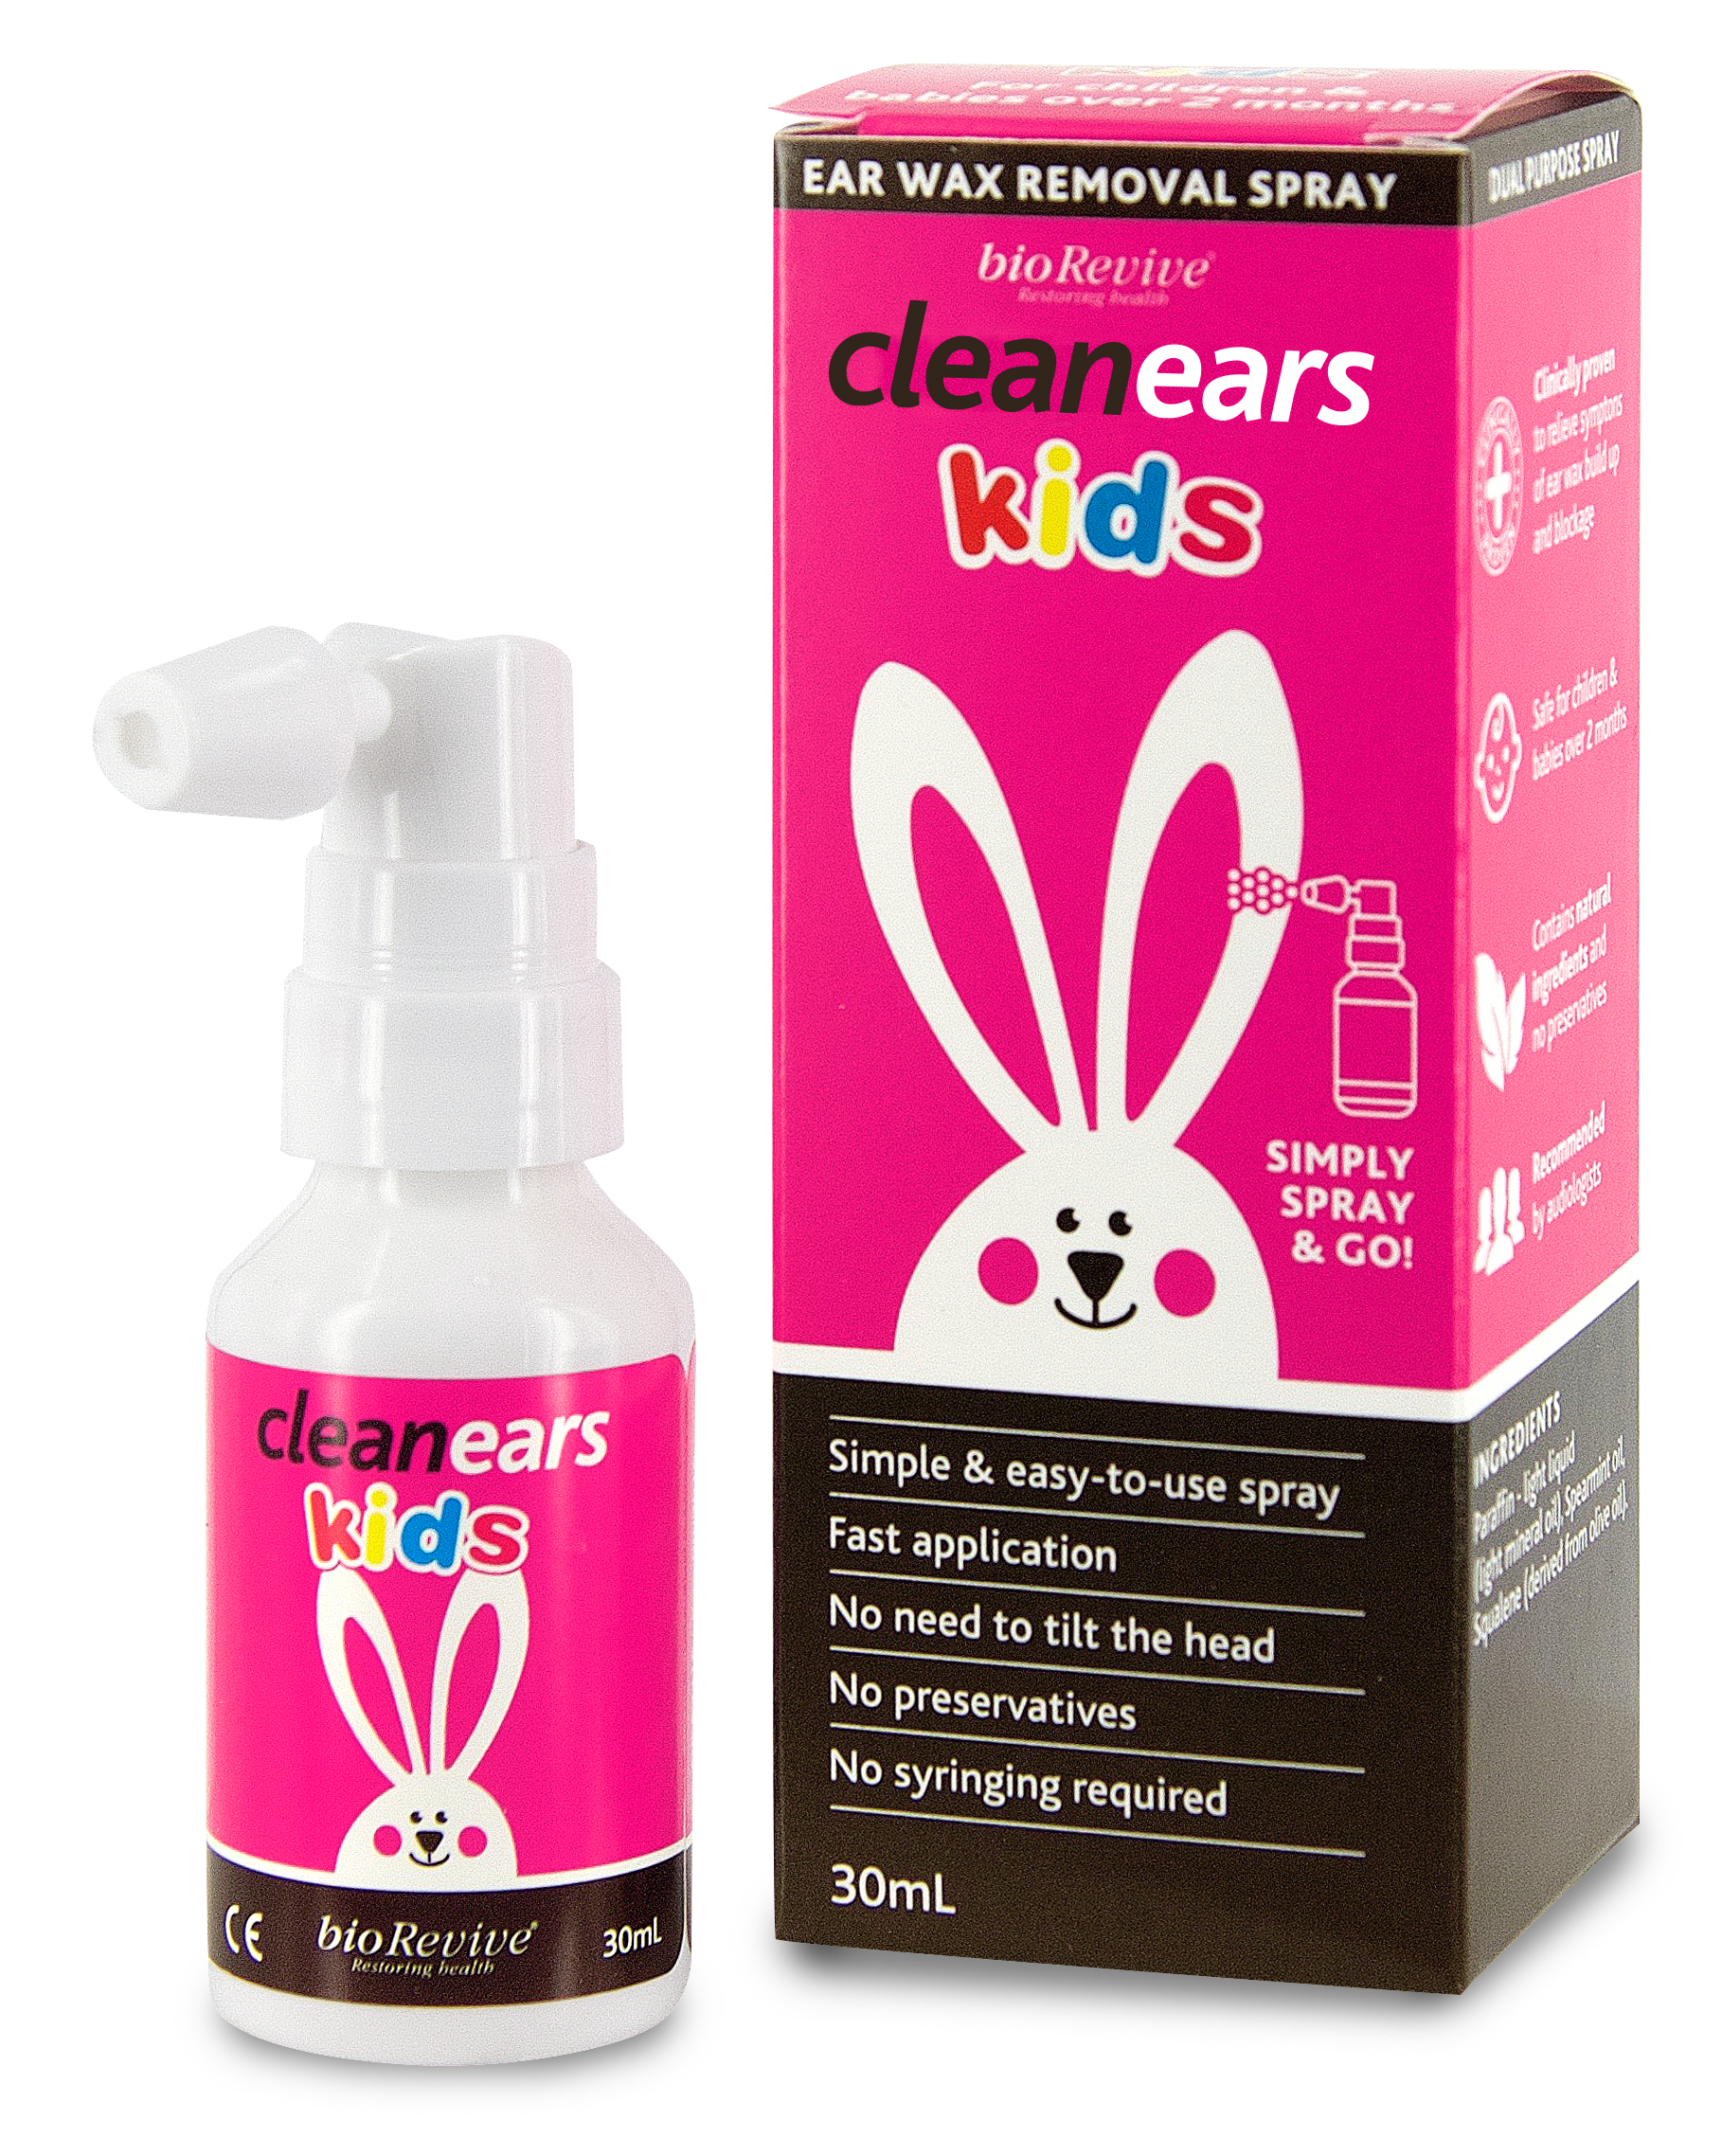 cleanears-kids-new-packaging